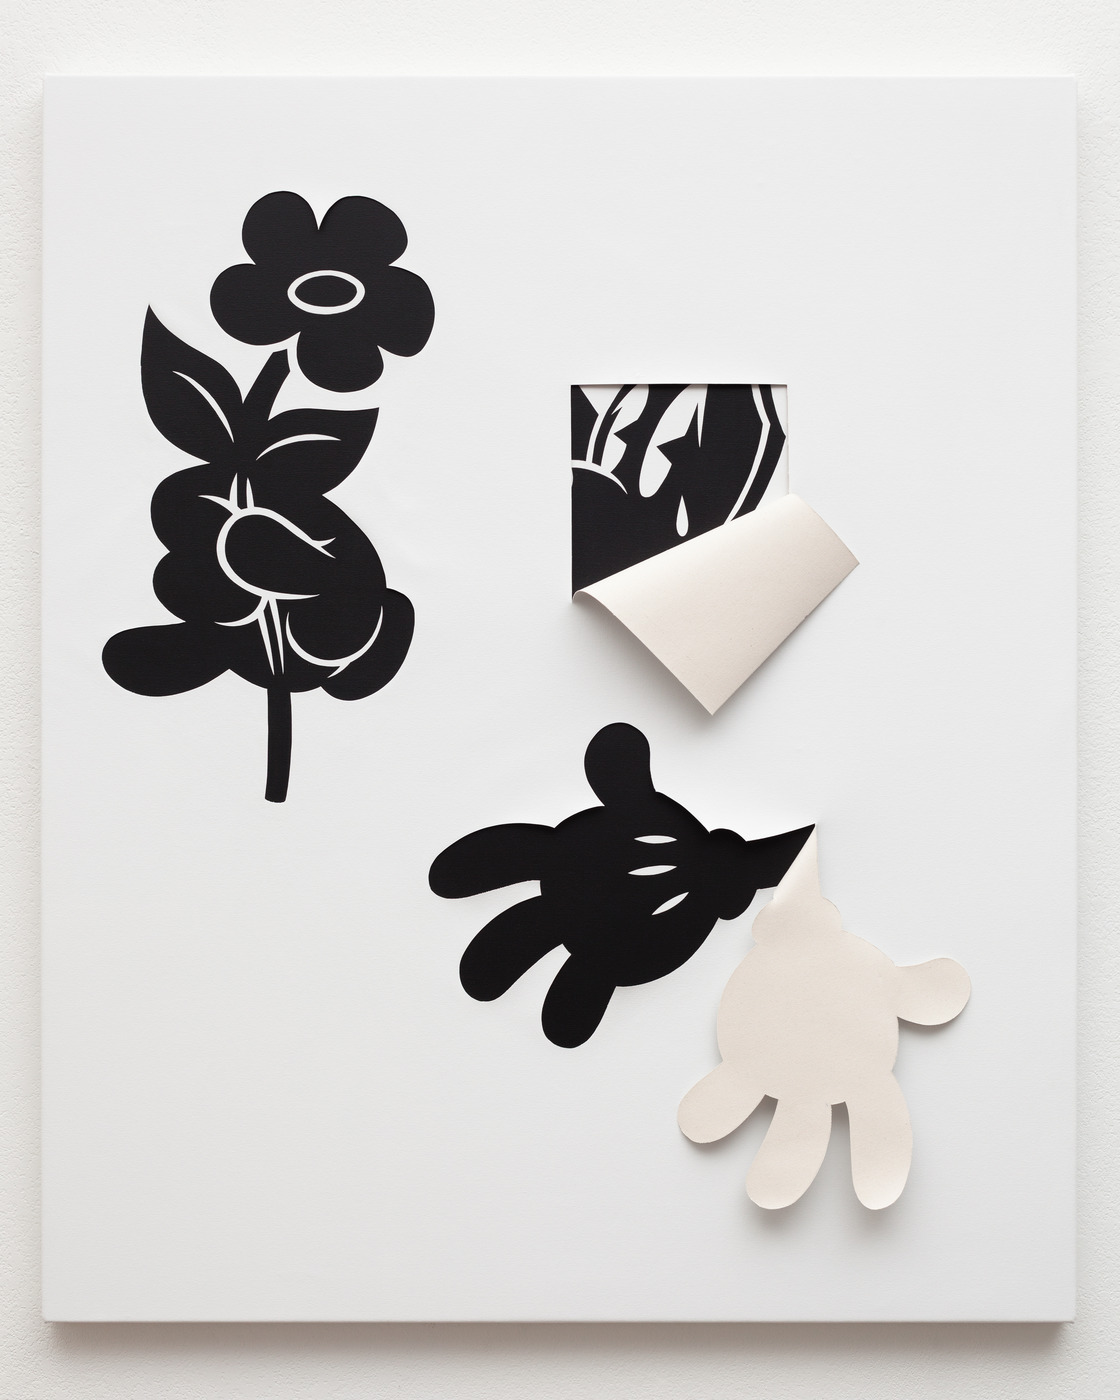 Zach Reini, Daisy, Daisy Give Me Your Answer, 2015